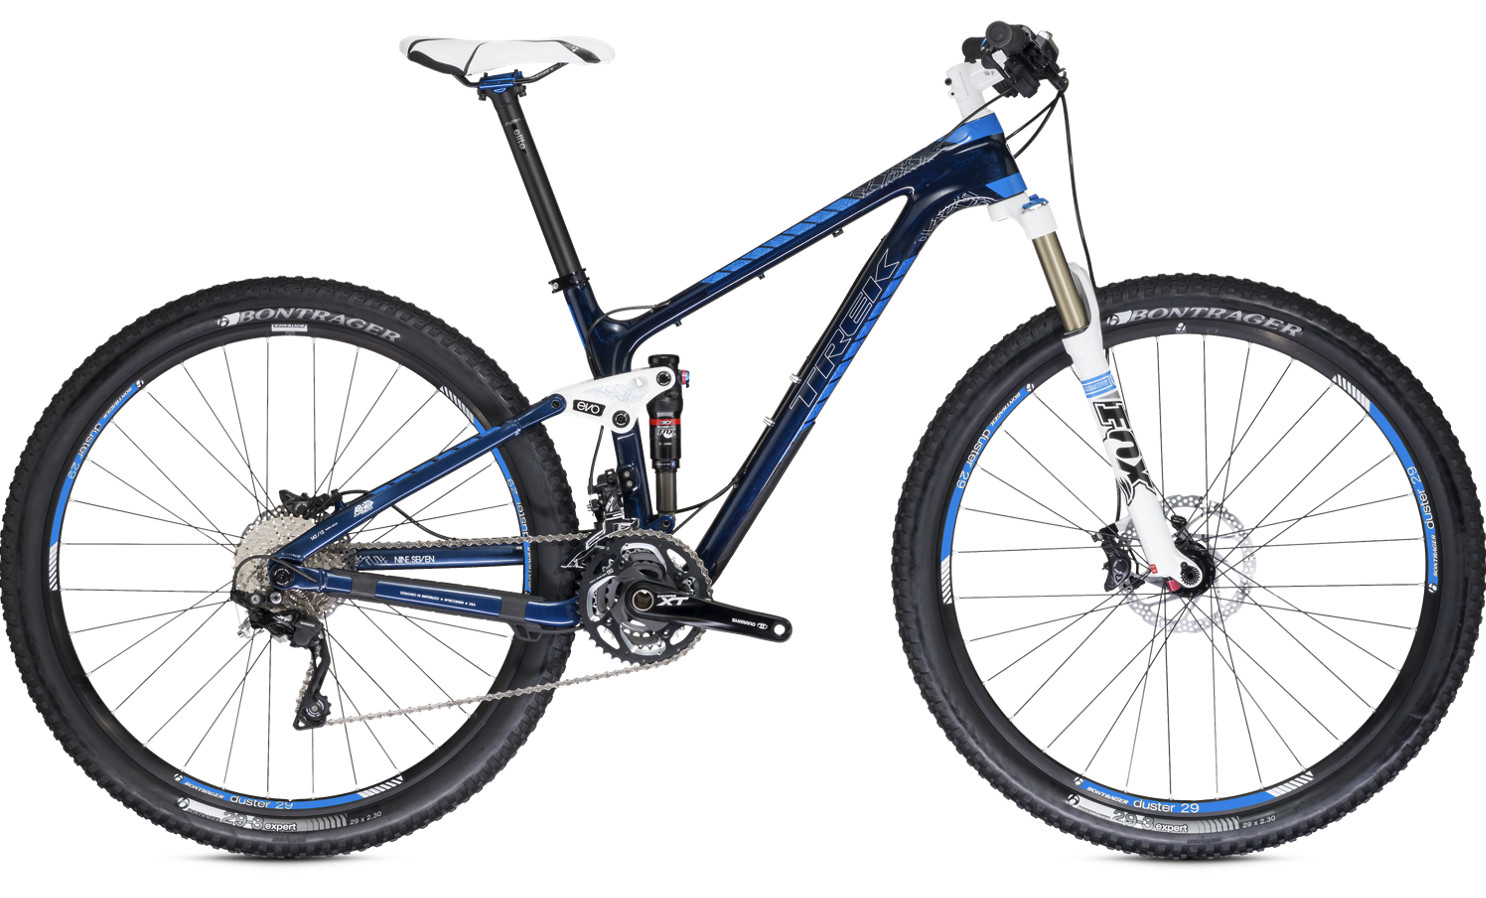 2014 Trek Fuel EX 97 29 Bike Reviews Comparisons